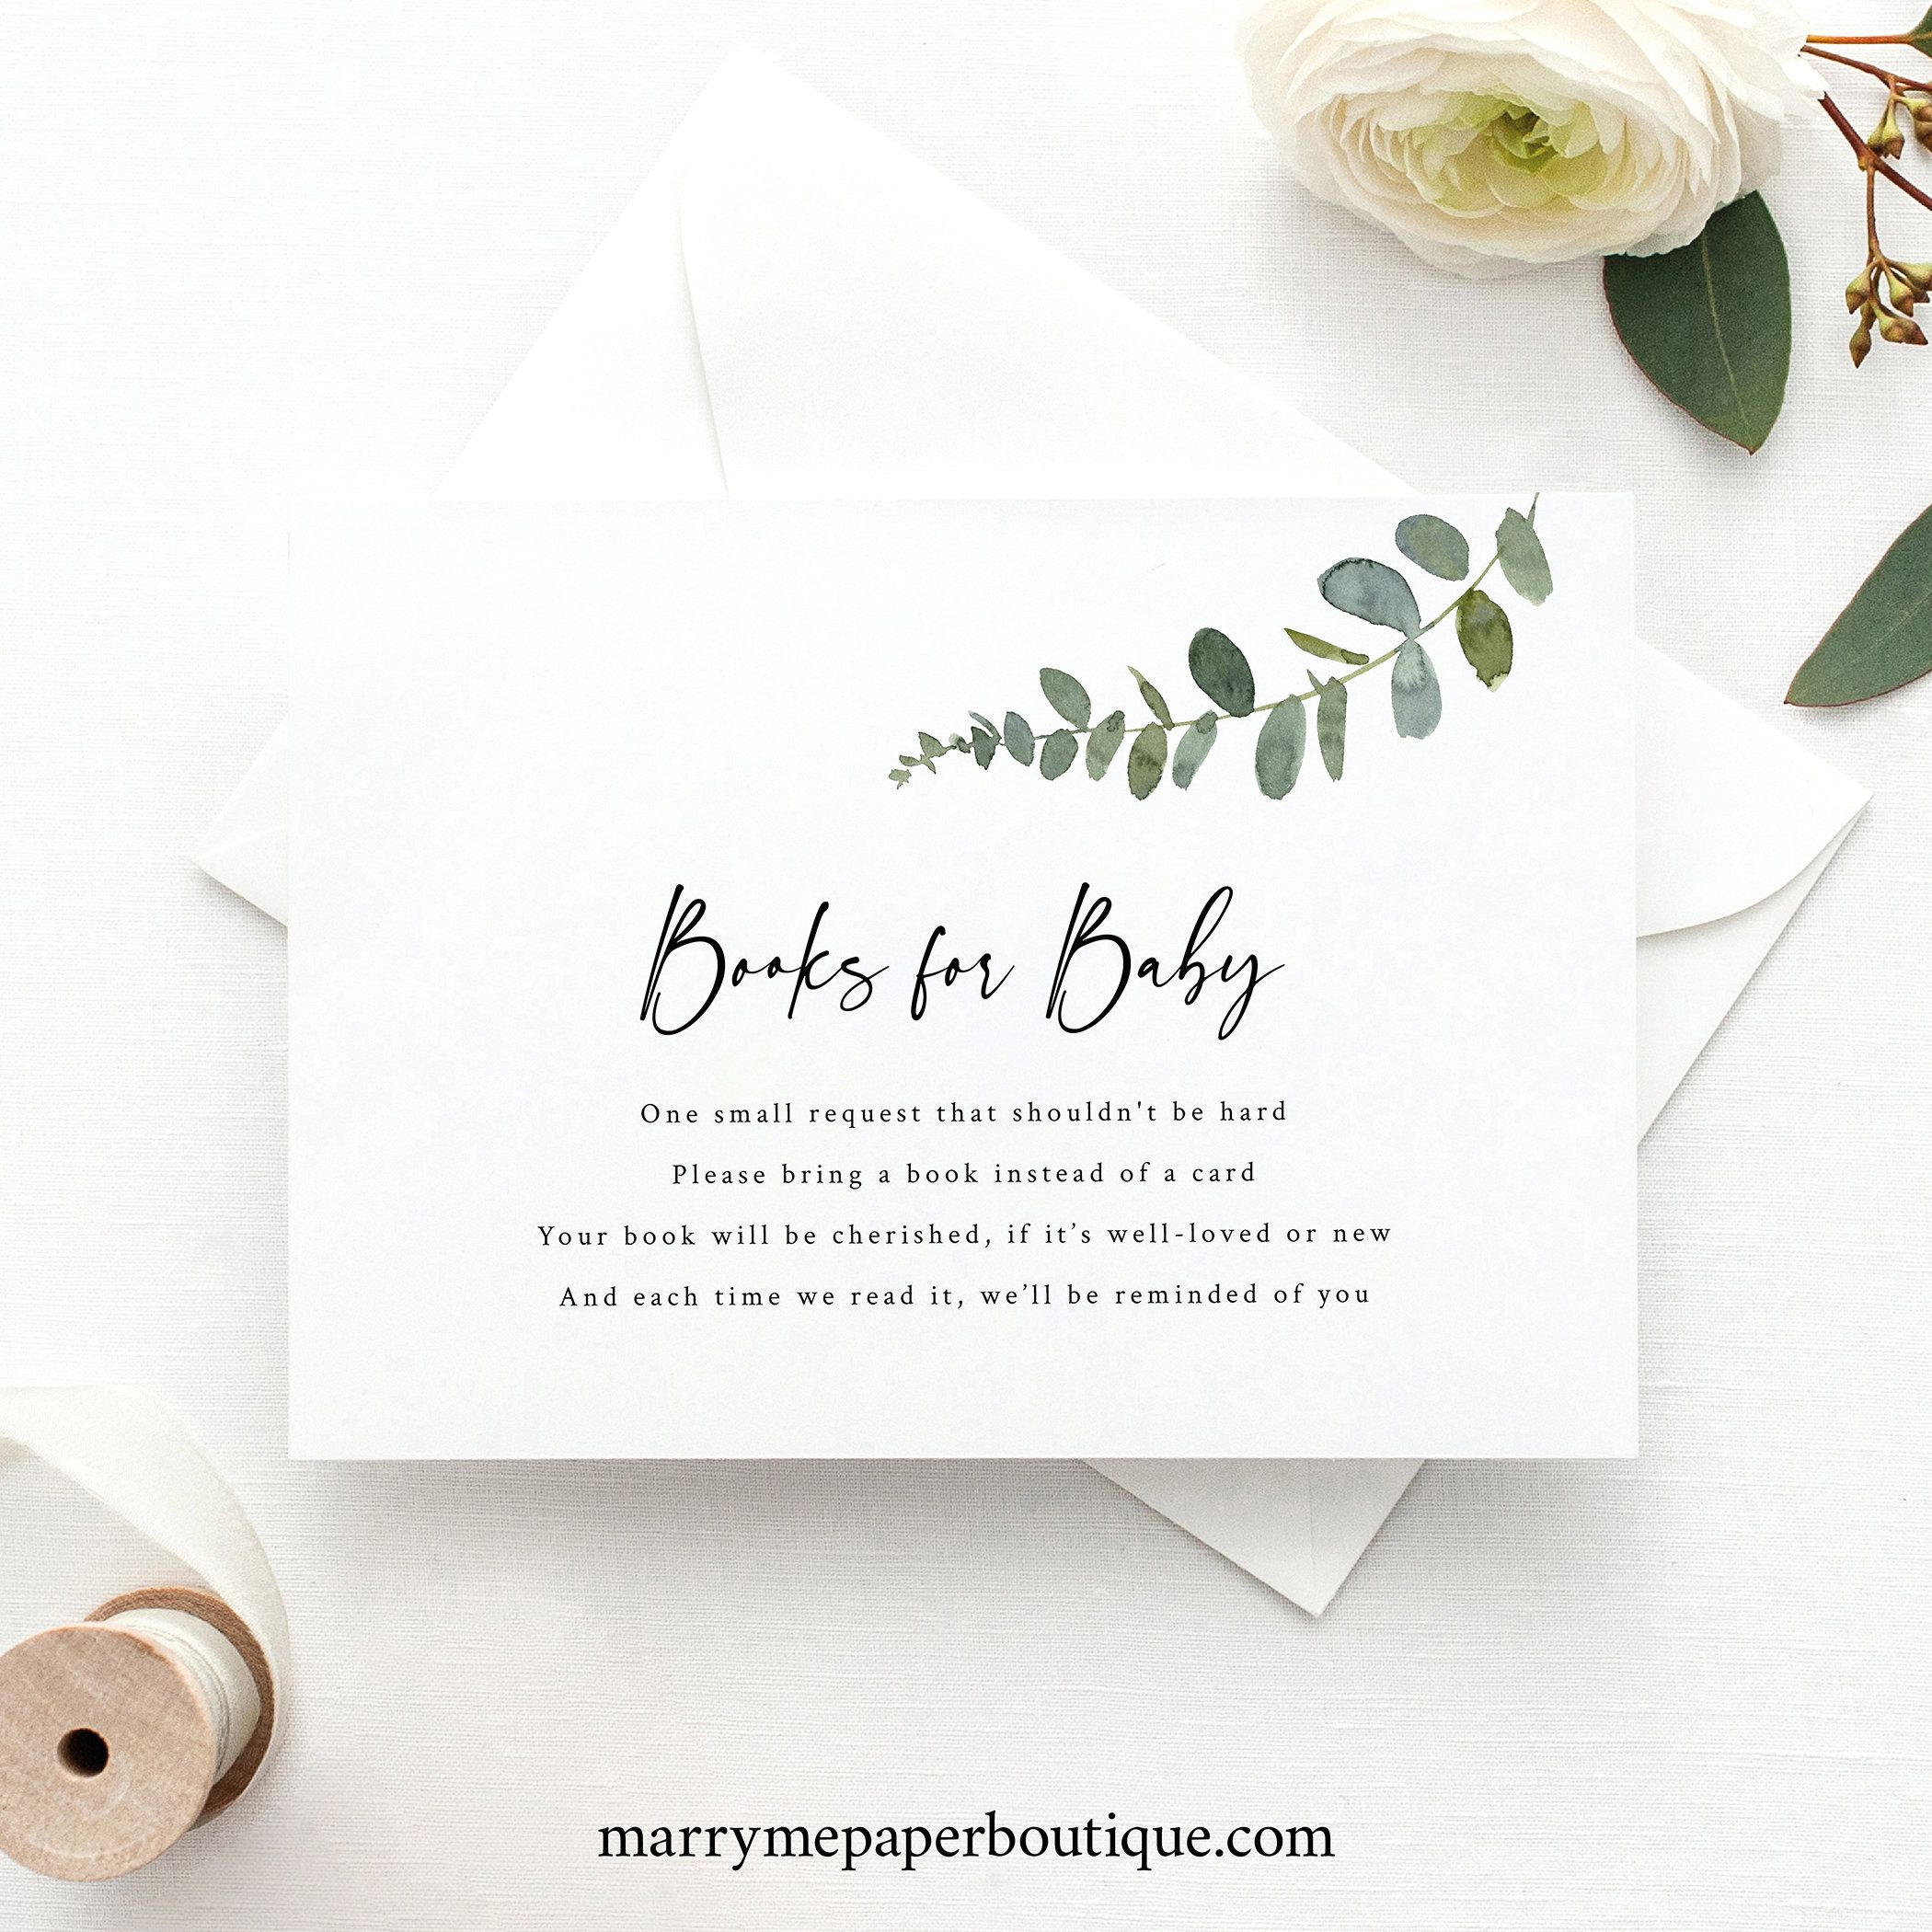 Greenery Books For Baby Template Eucalyptus Baby Shower Etsy Wedding Registry Cards Registry Cards Gift Registry Cards